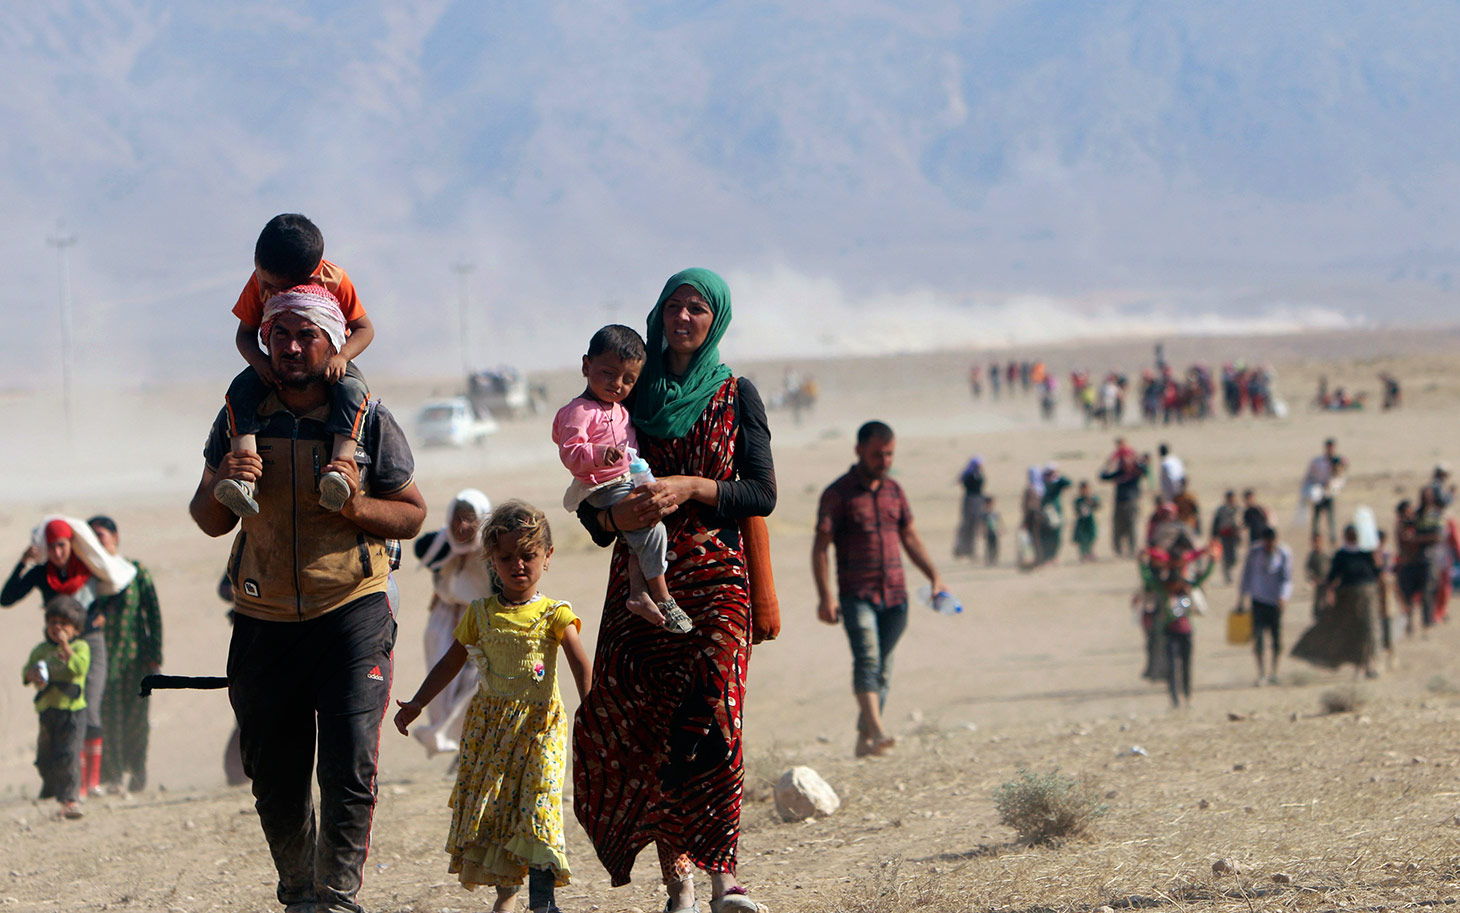 Displaced people from the minority Yazidi sect, fleeing violence from forces loyal to the Islamic State in Sinjar town, walk towards the Syrian border, on the outskirts of Sinjar mountain, near the Syrian border town of Elierbeh of Al-Hasakah Governorate